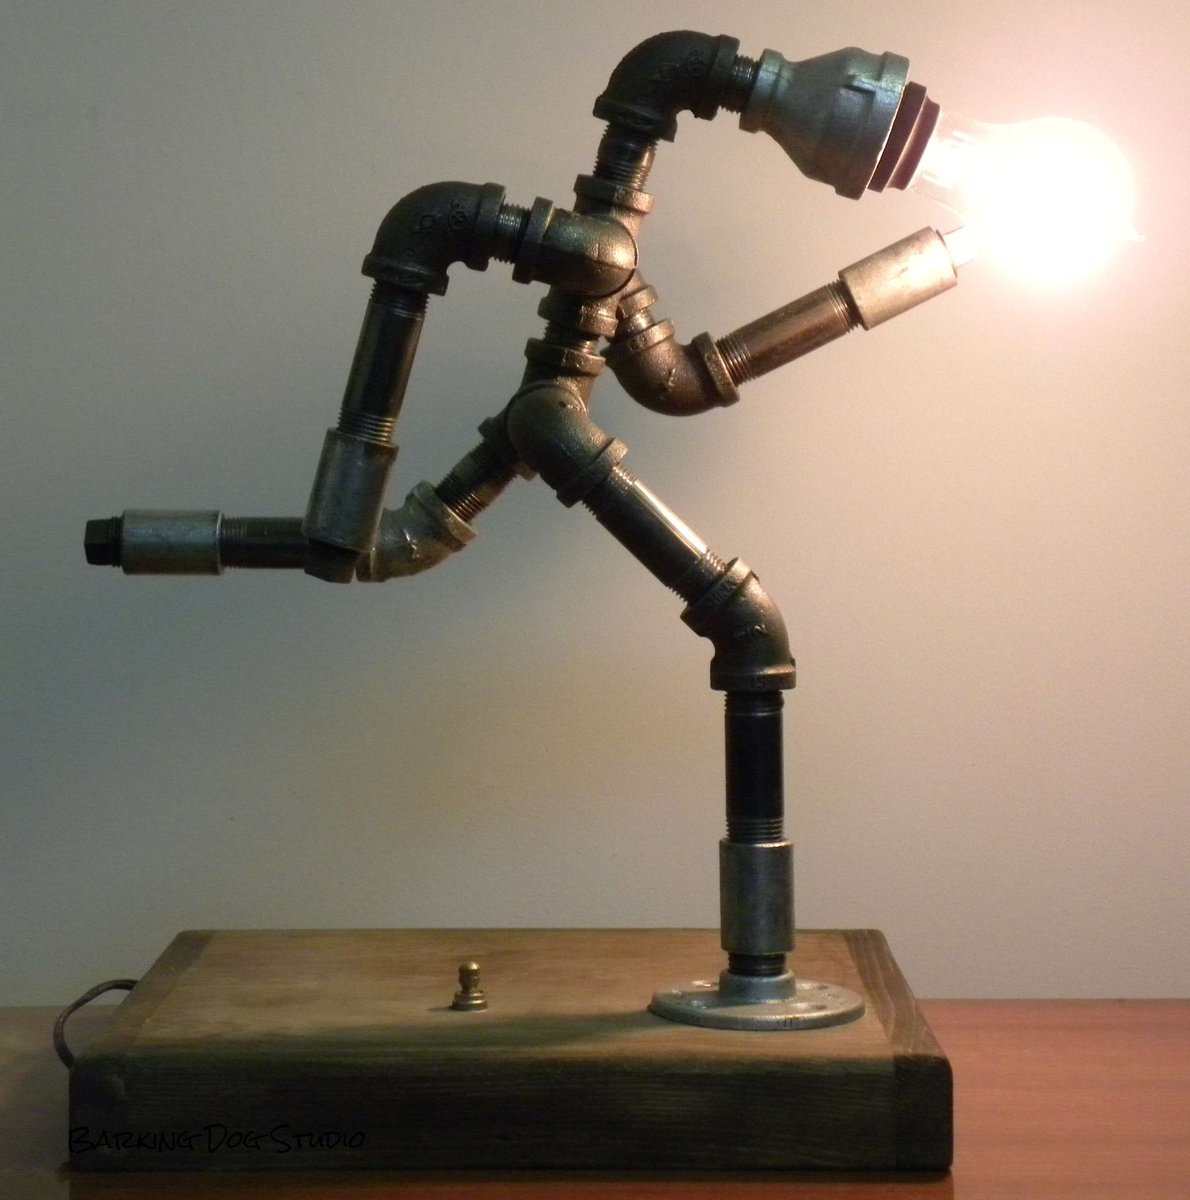 Barking dog studio on twitter running man lamp with for Pipe lamp plans